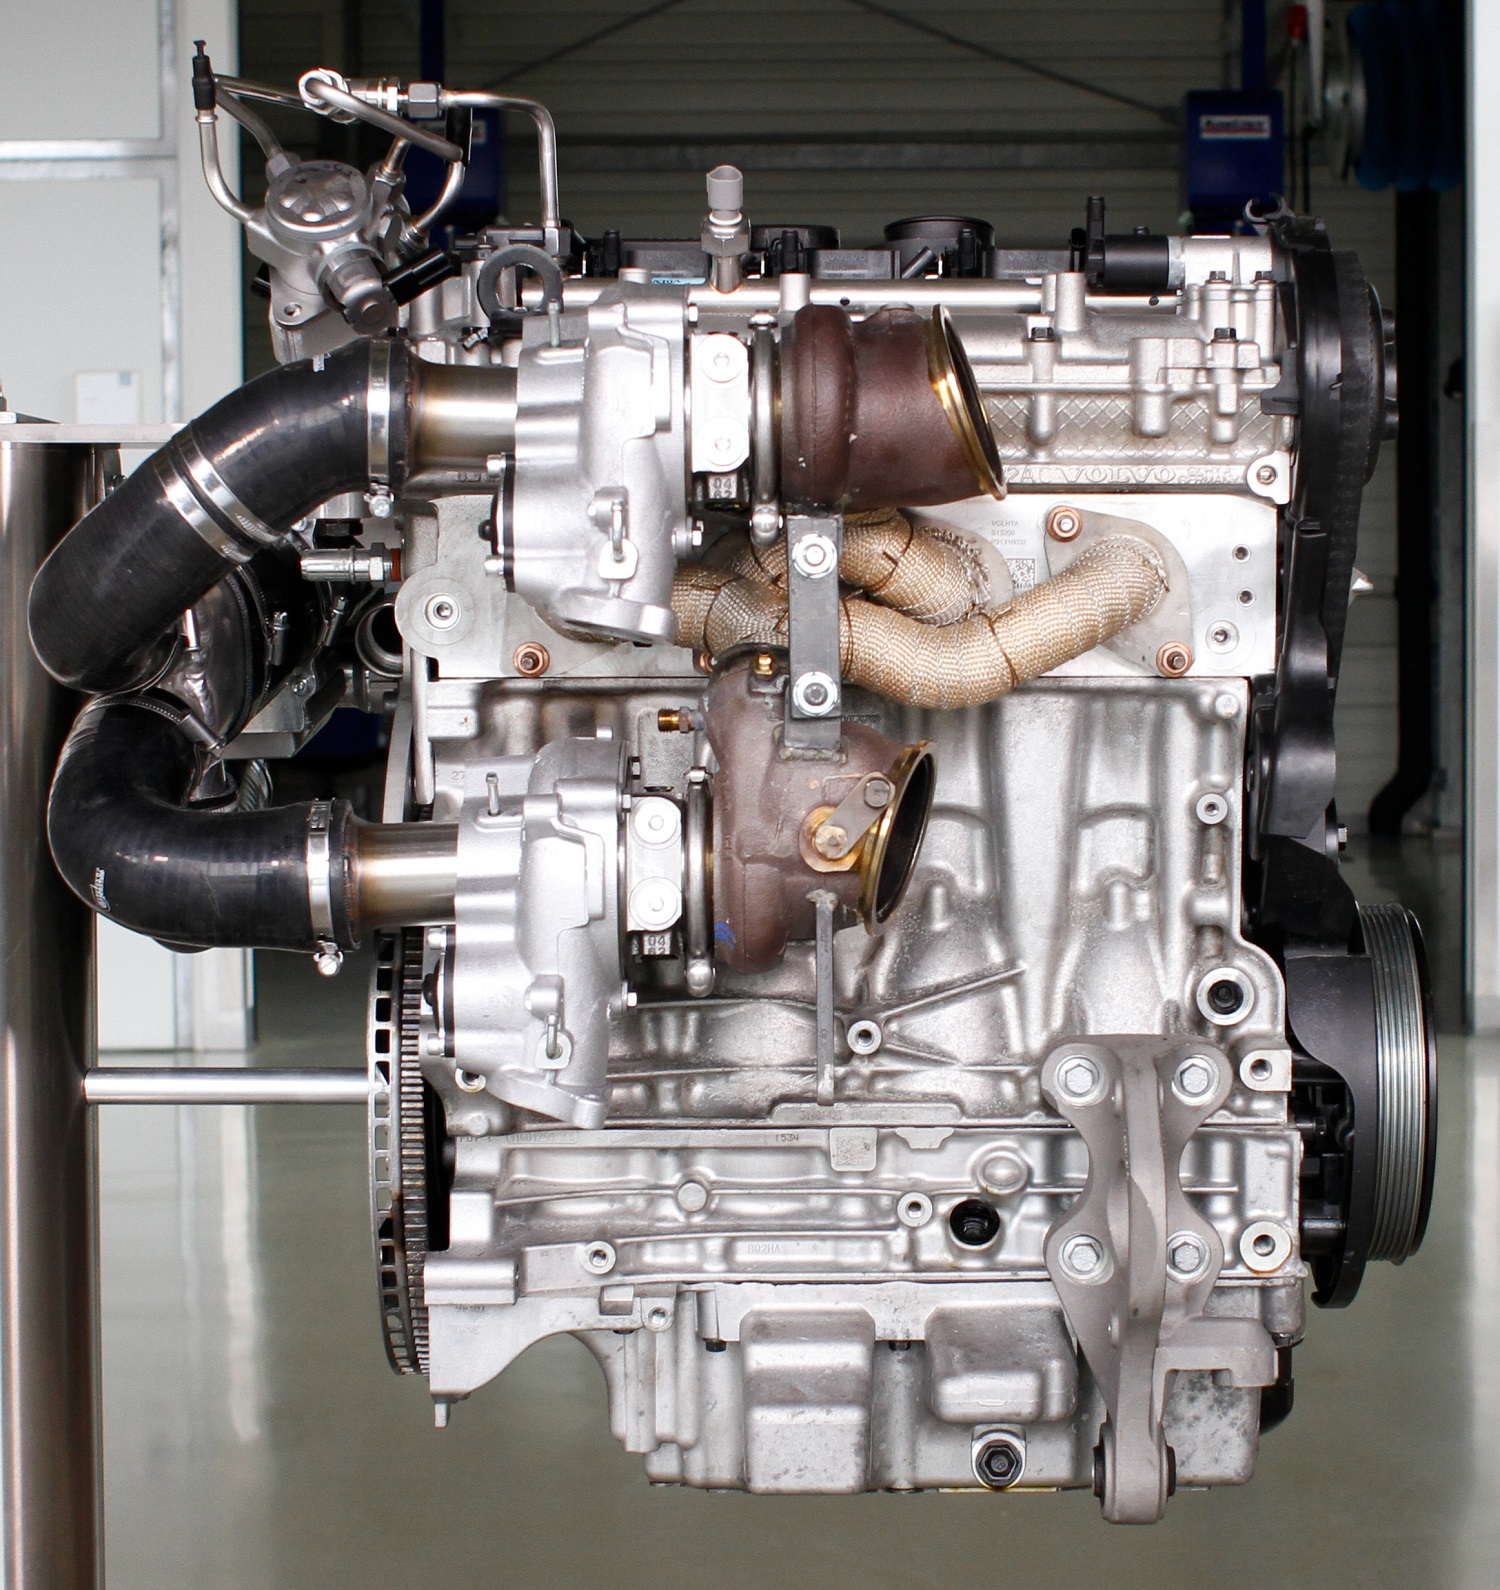 Volvo Drive-E 450 hp High Performance Engine - Four Cylinder Triple Boost Technology